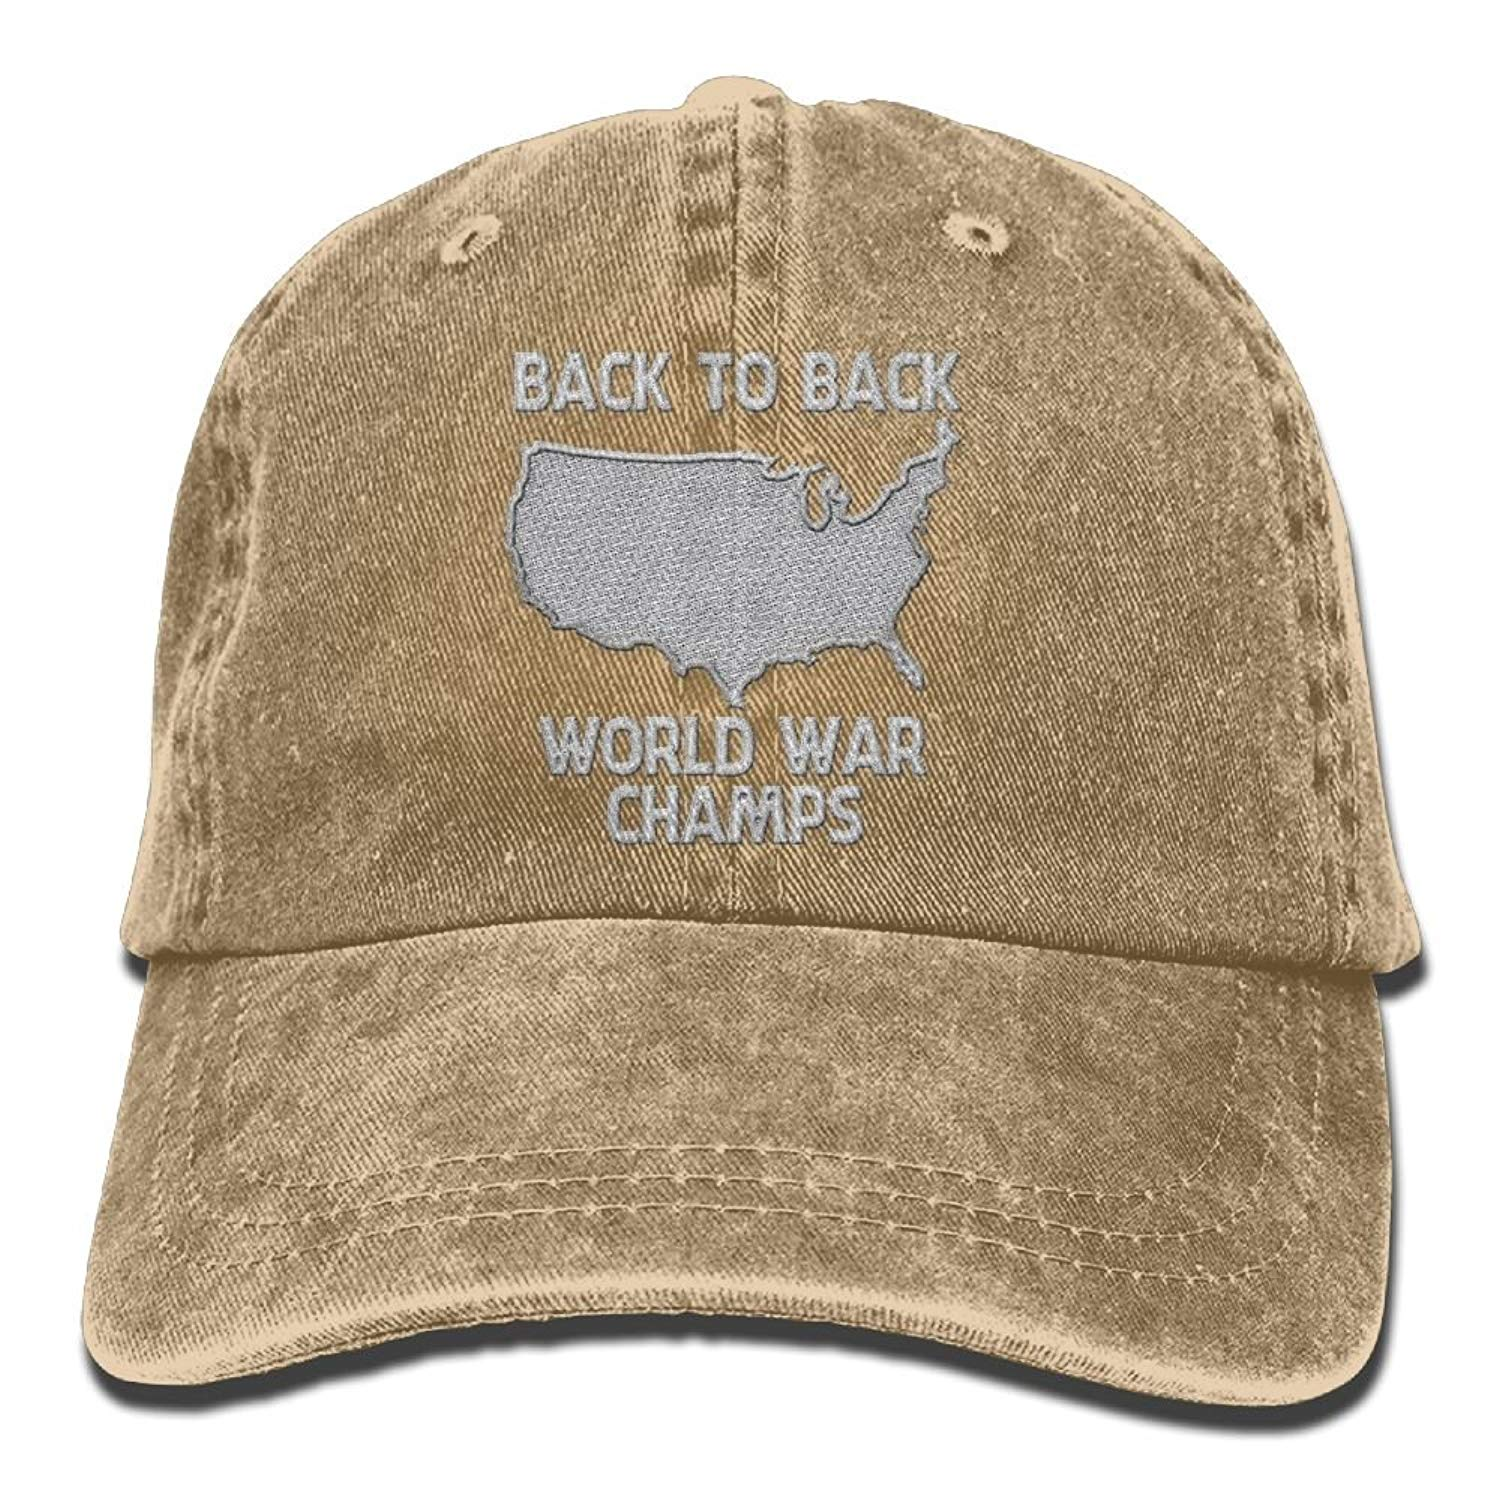 Get Quotations · Back-to-Back World War Champs - Embroidered Retro Denim  Baseball Hat Trucker Hat 162fc4b6eead